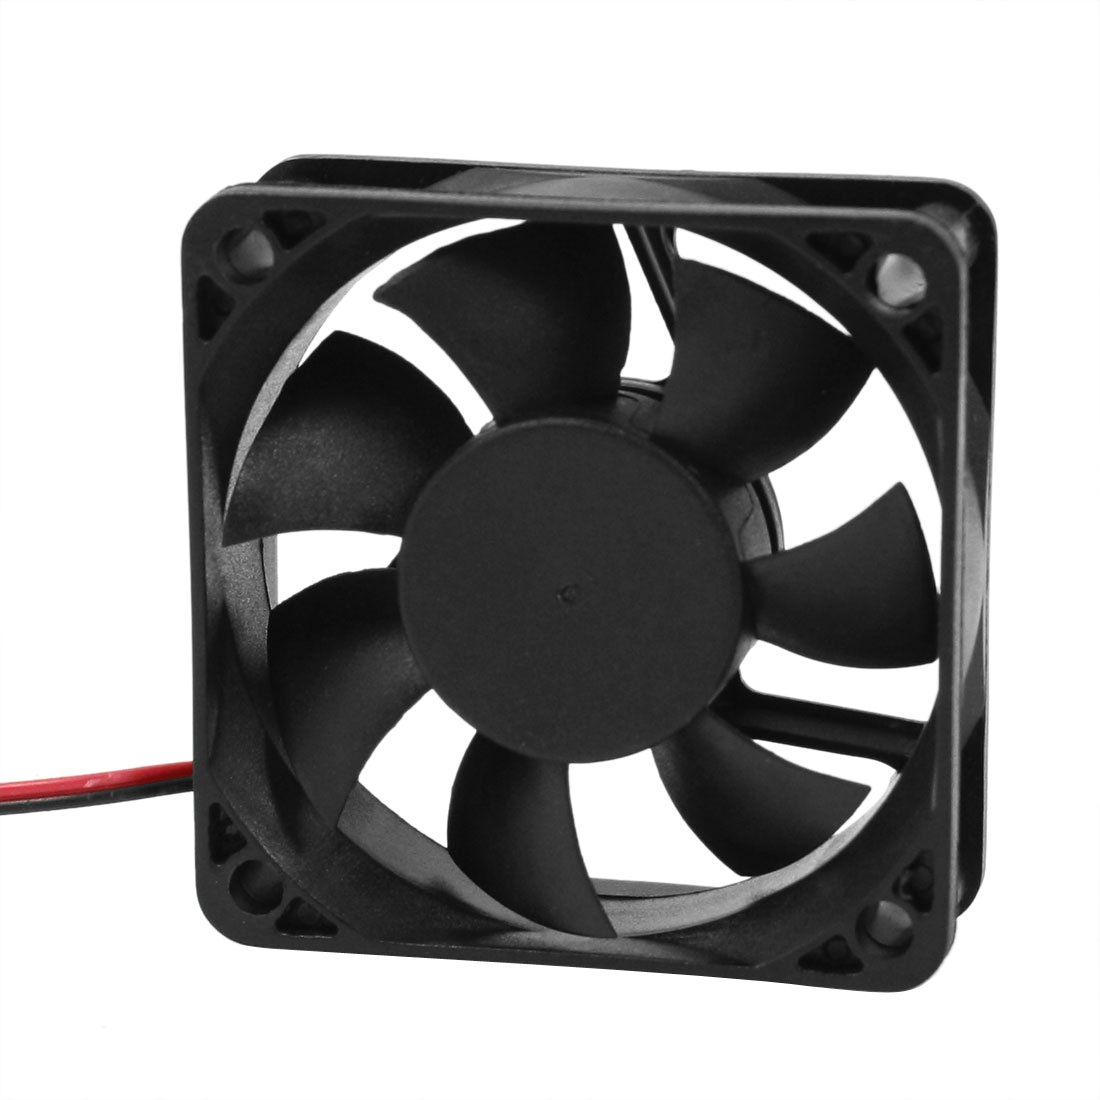 Gtfs Hot Sale Dc 12v 2pins Cooling Fan 60mm X 15mm For Pc Computer